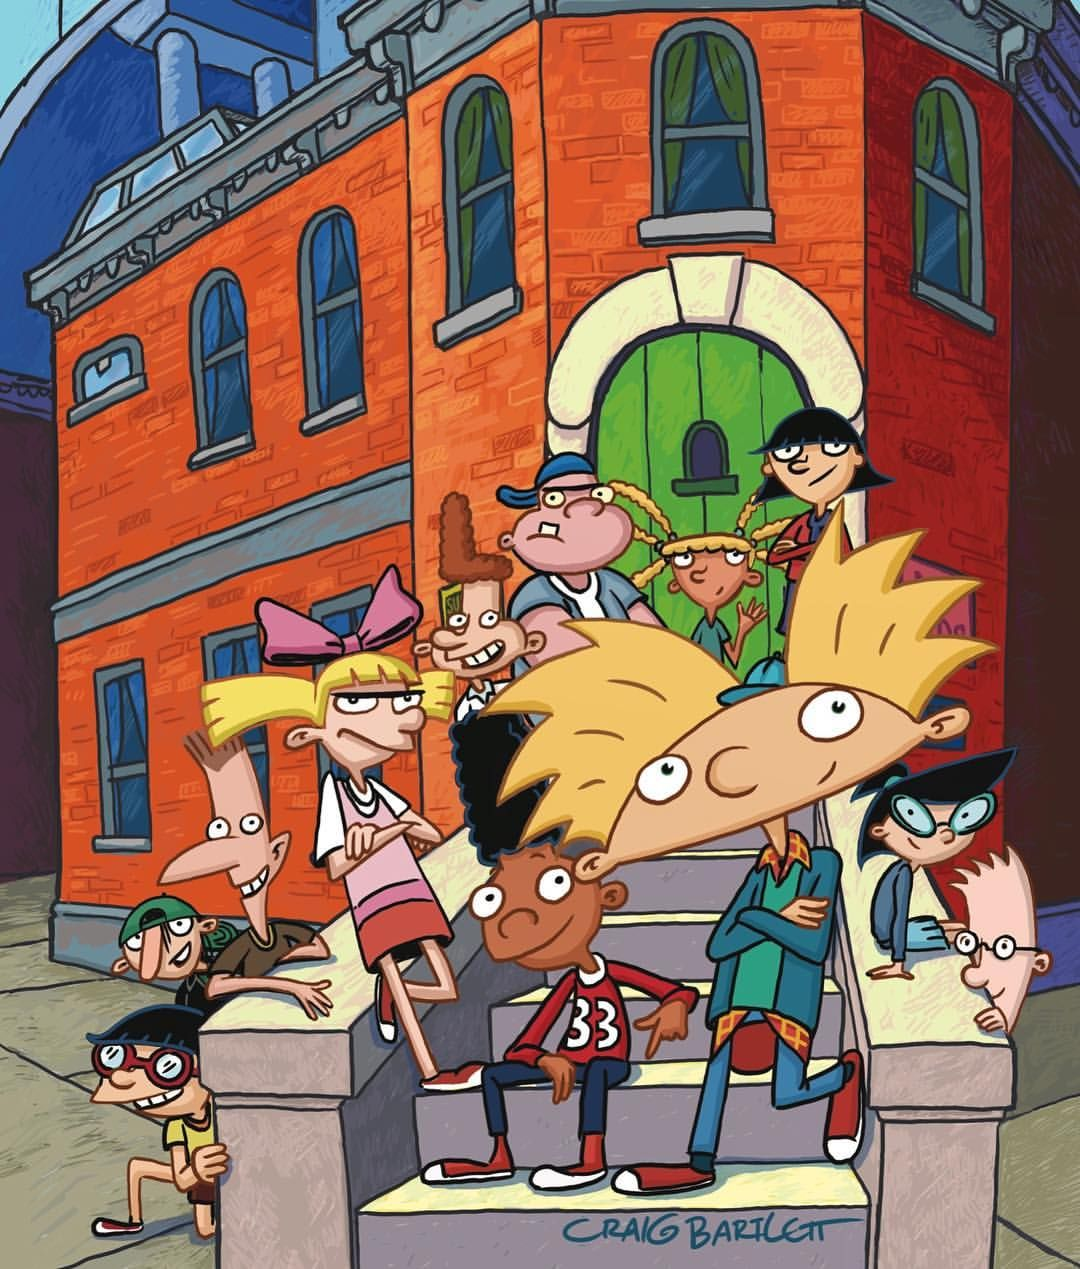 Hey Gang The Ultimate Hey Arnold Collection Drops In November I Picked Out Dibujos Animados Viejos Dibujos Animados De Los Anos 90 Mejores Dibujos Animados